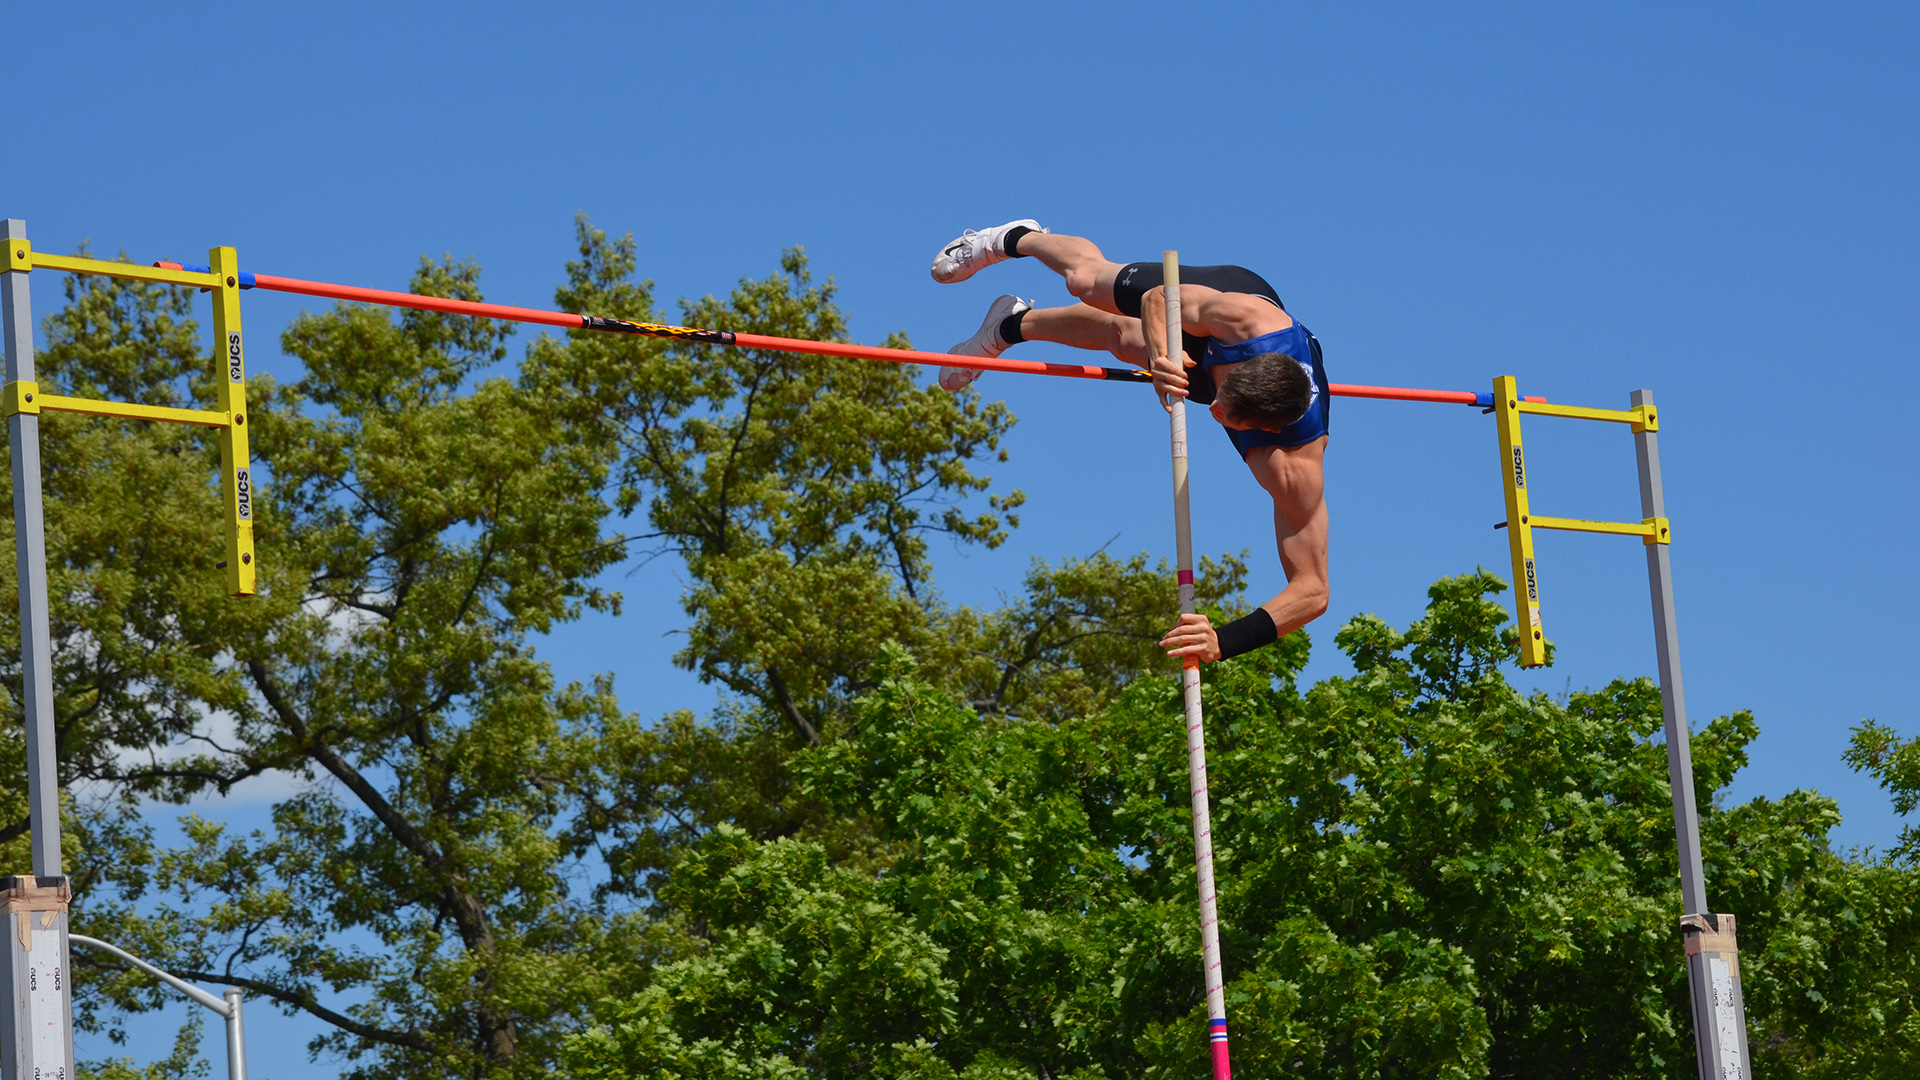 Track and field athlete attempts a pole vault.